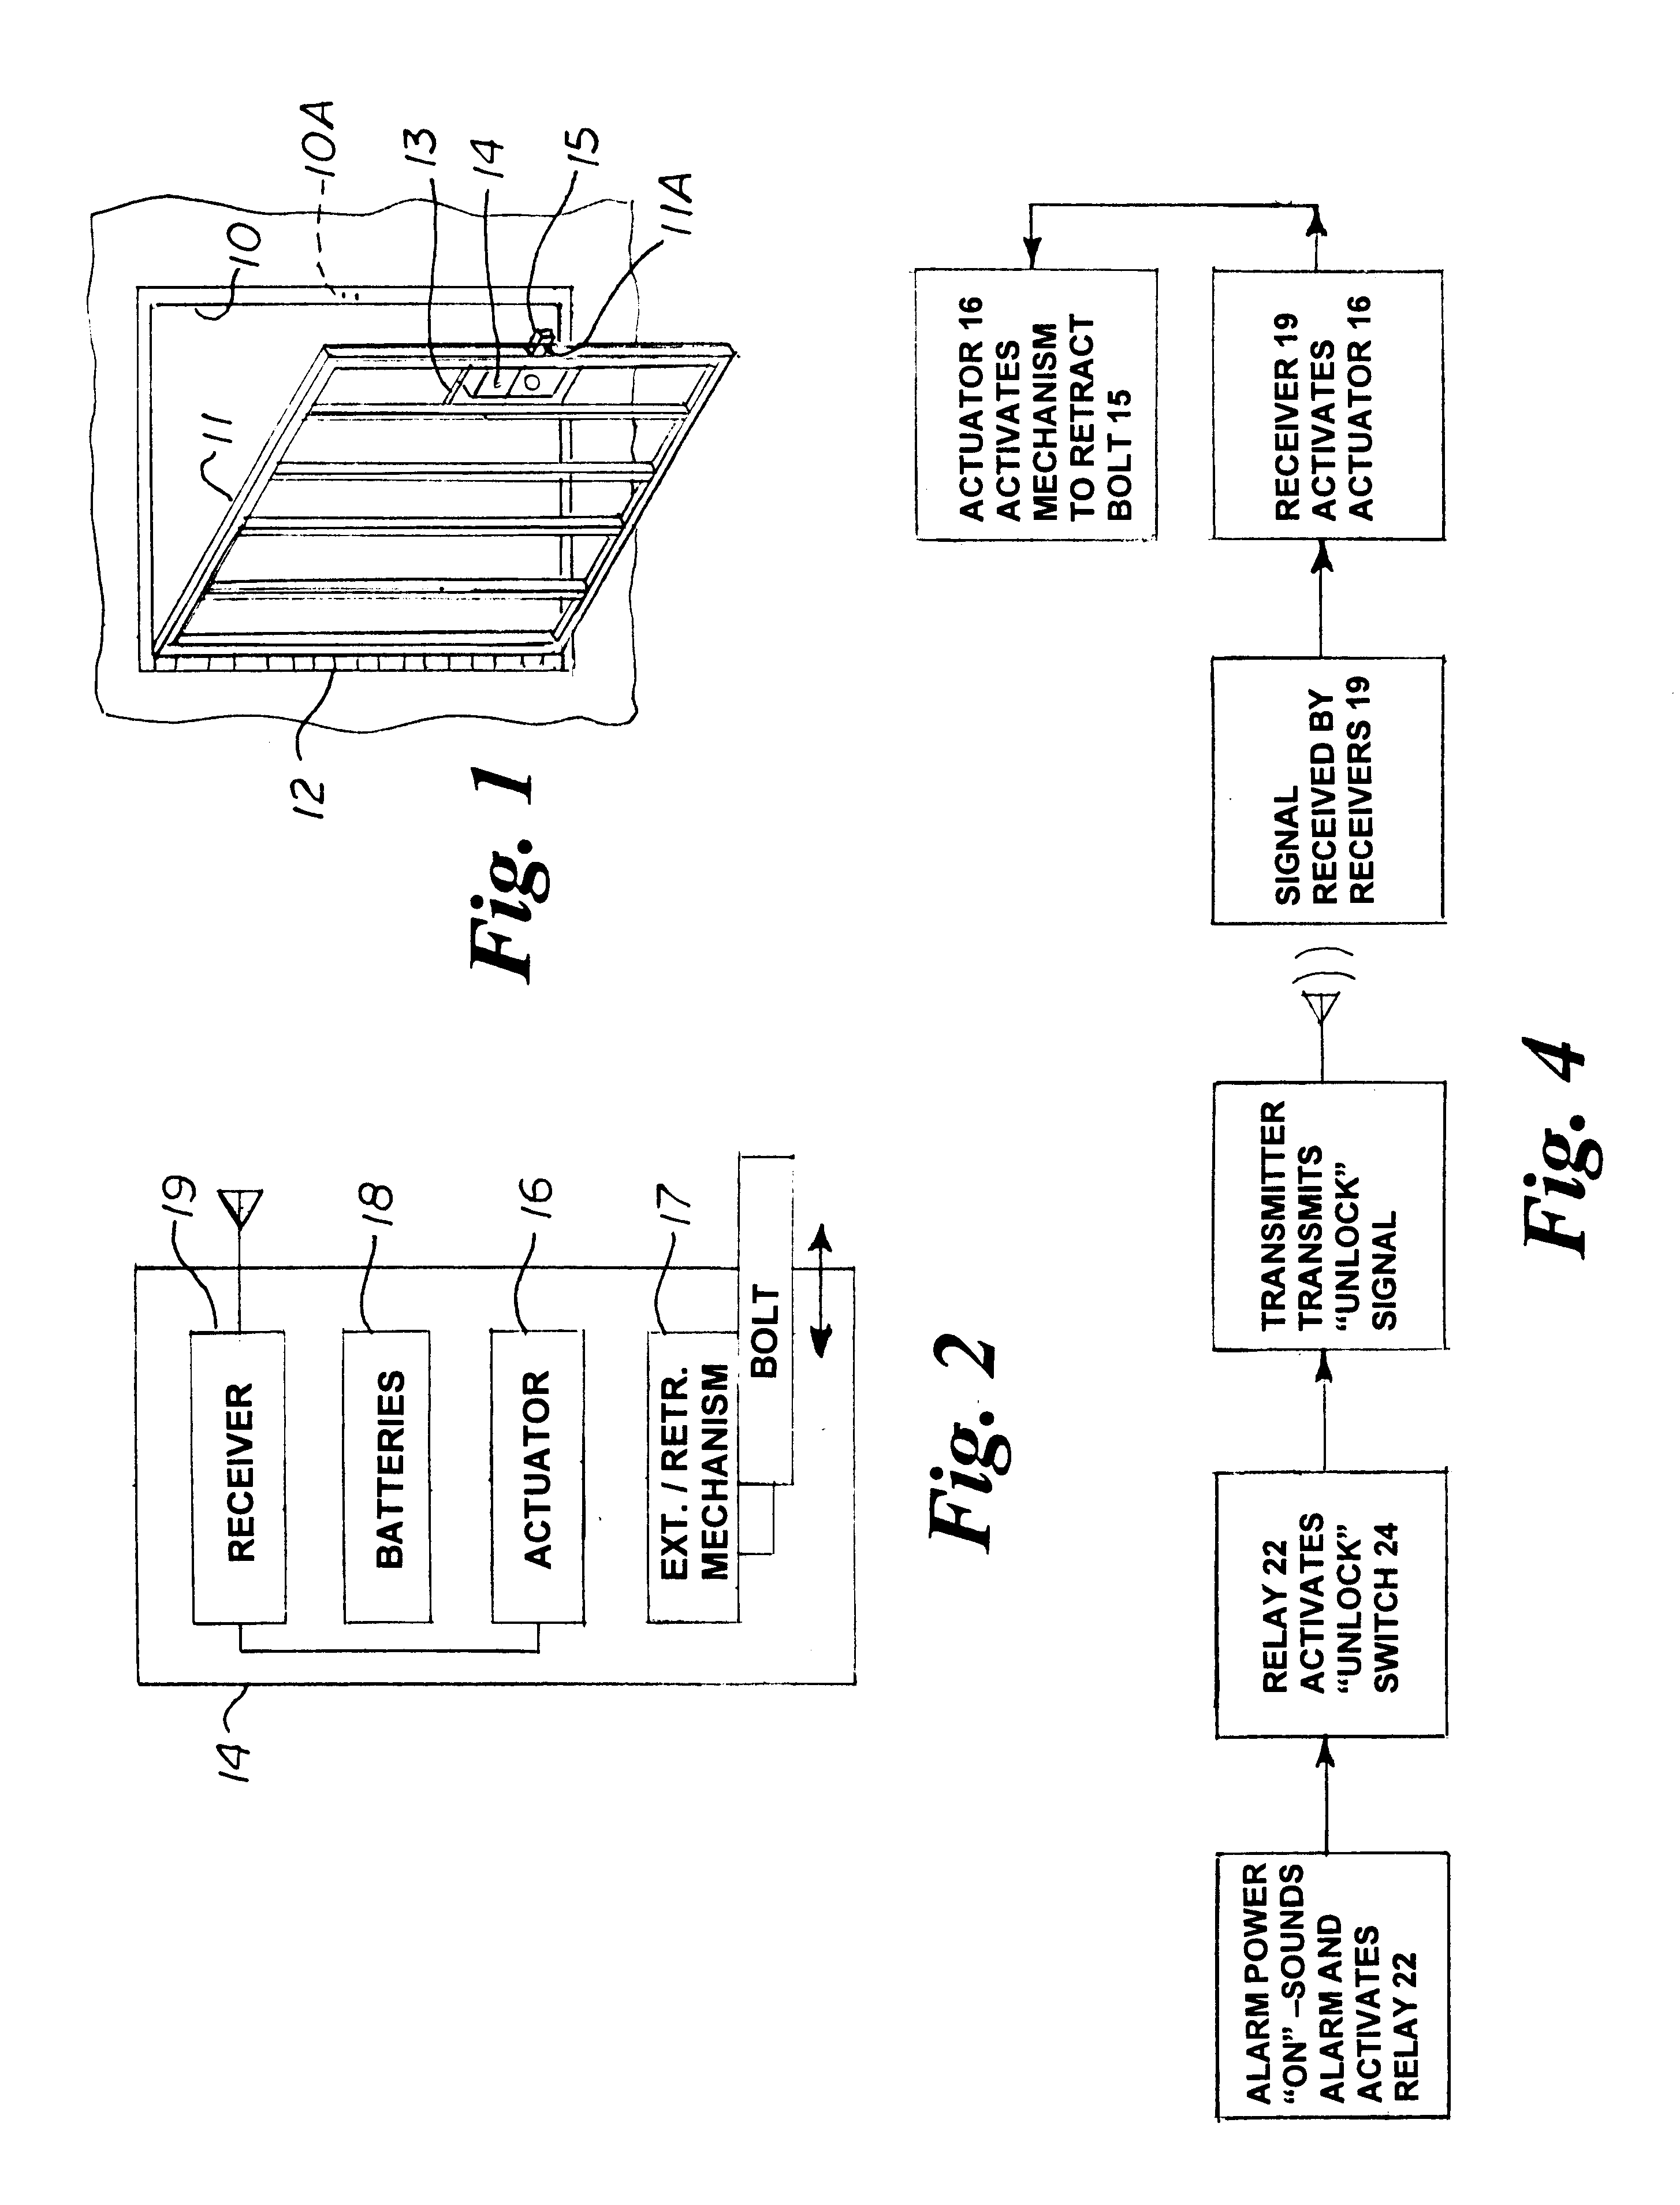 patent us6786005 - emergency release burglar bars actuated by smoke alarm